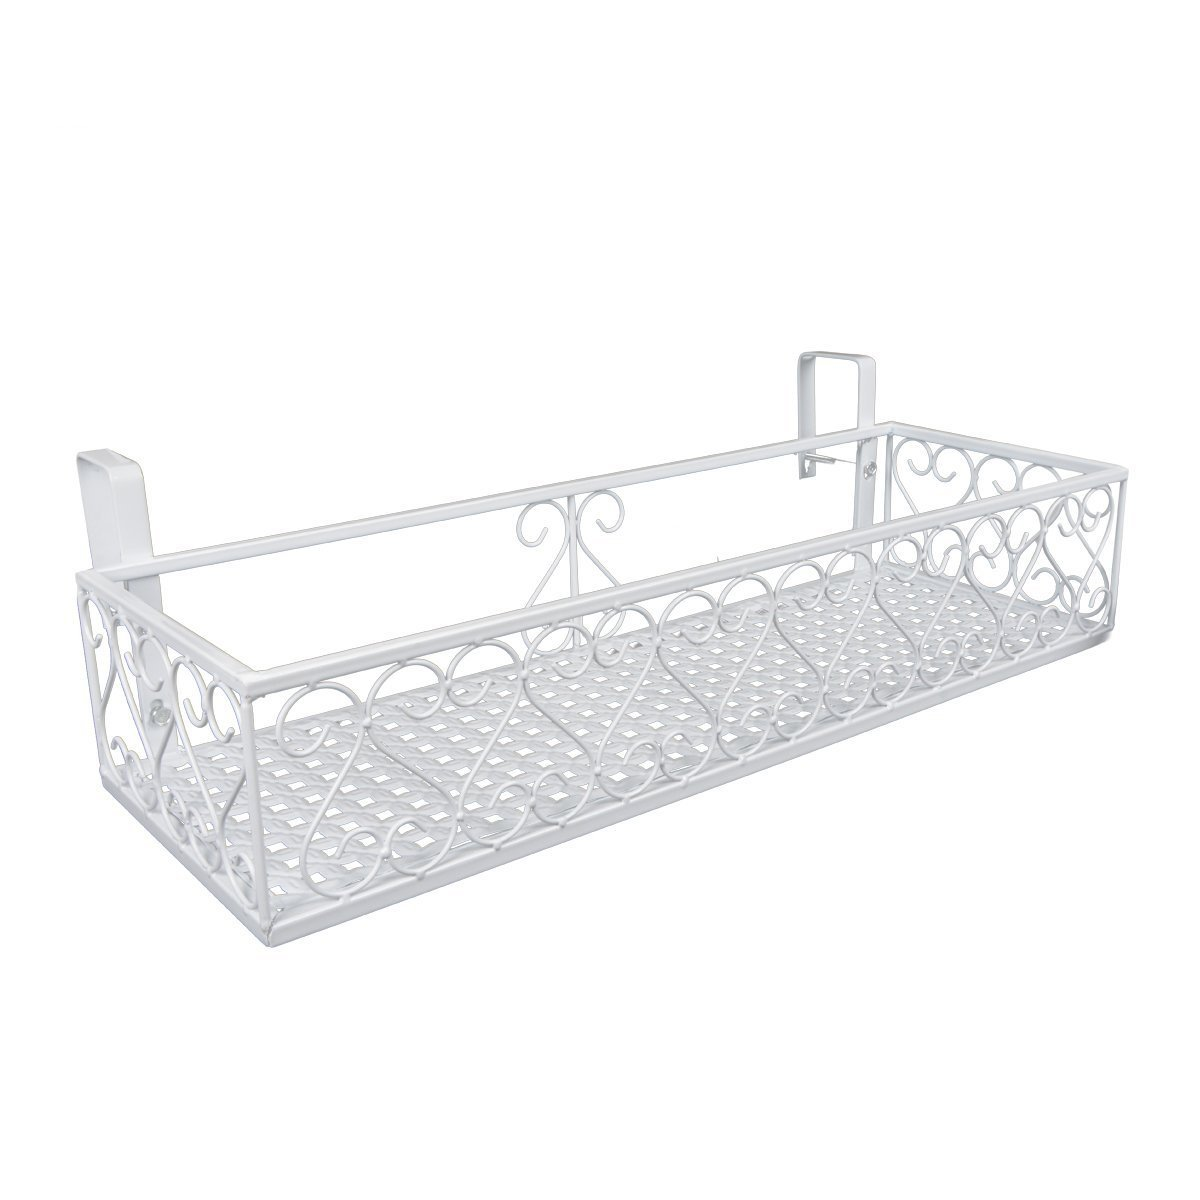 Saim Hanging Patio deck railing planter Flower Box Holder (White) by Saim